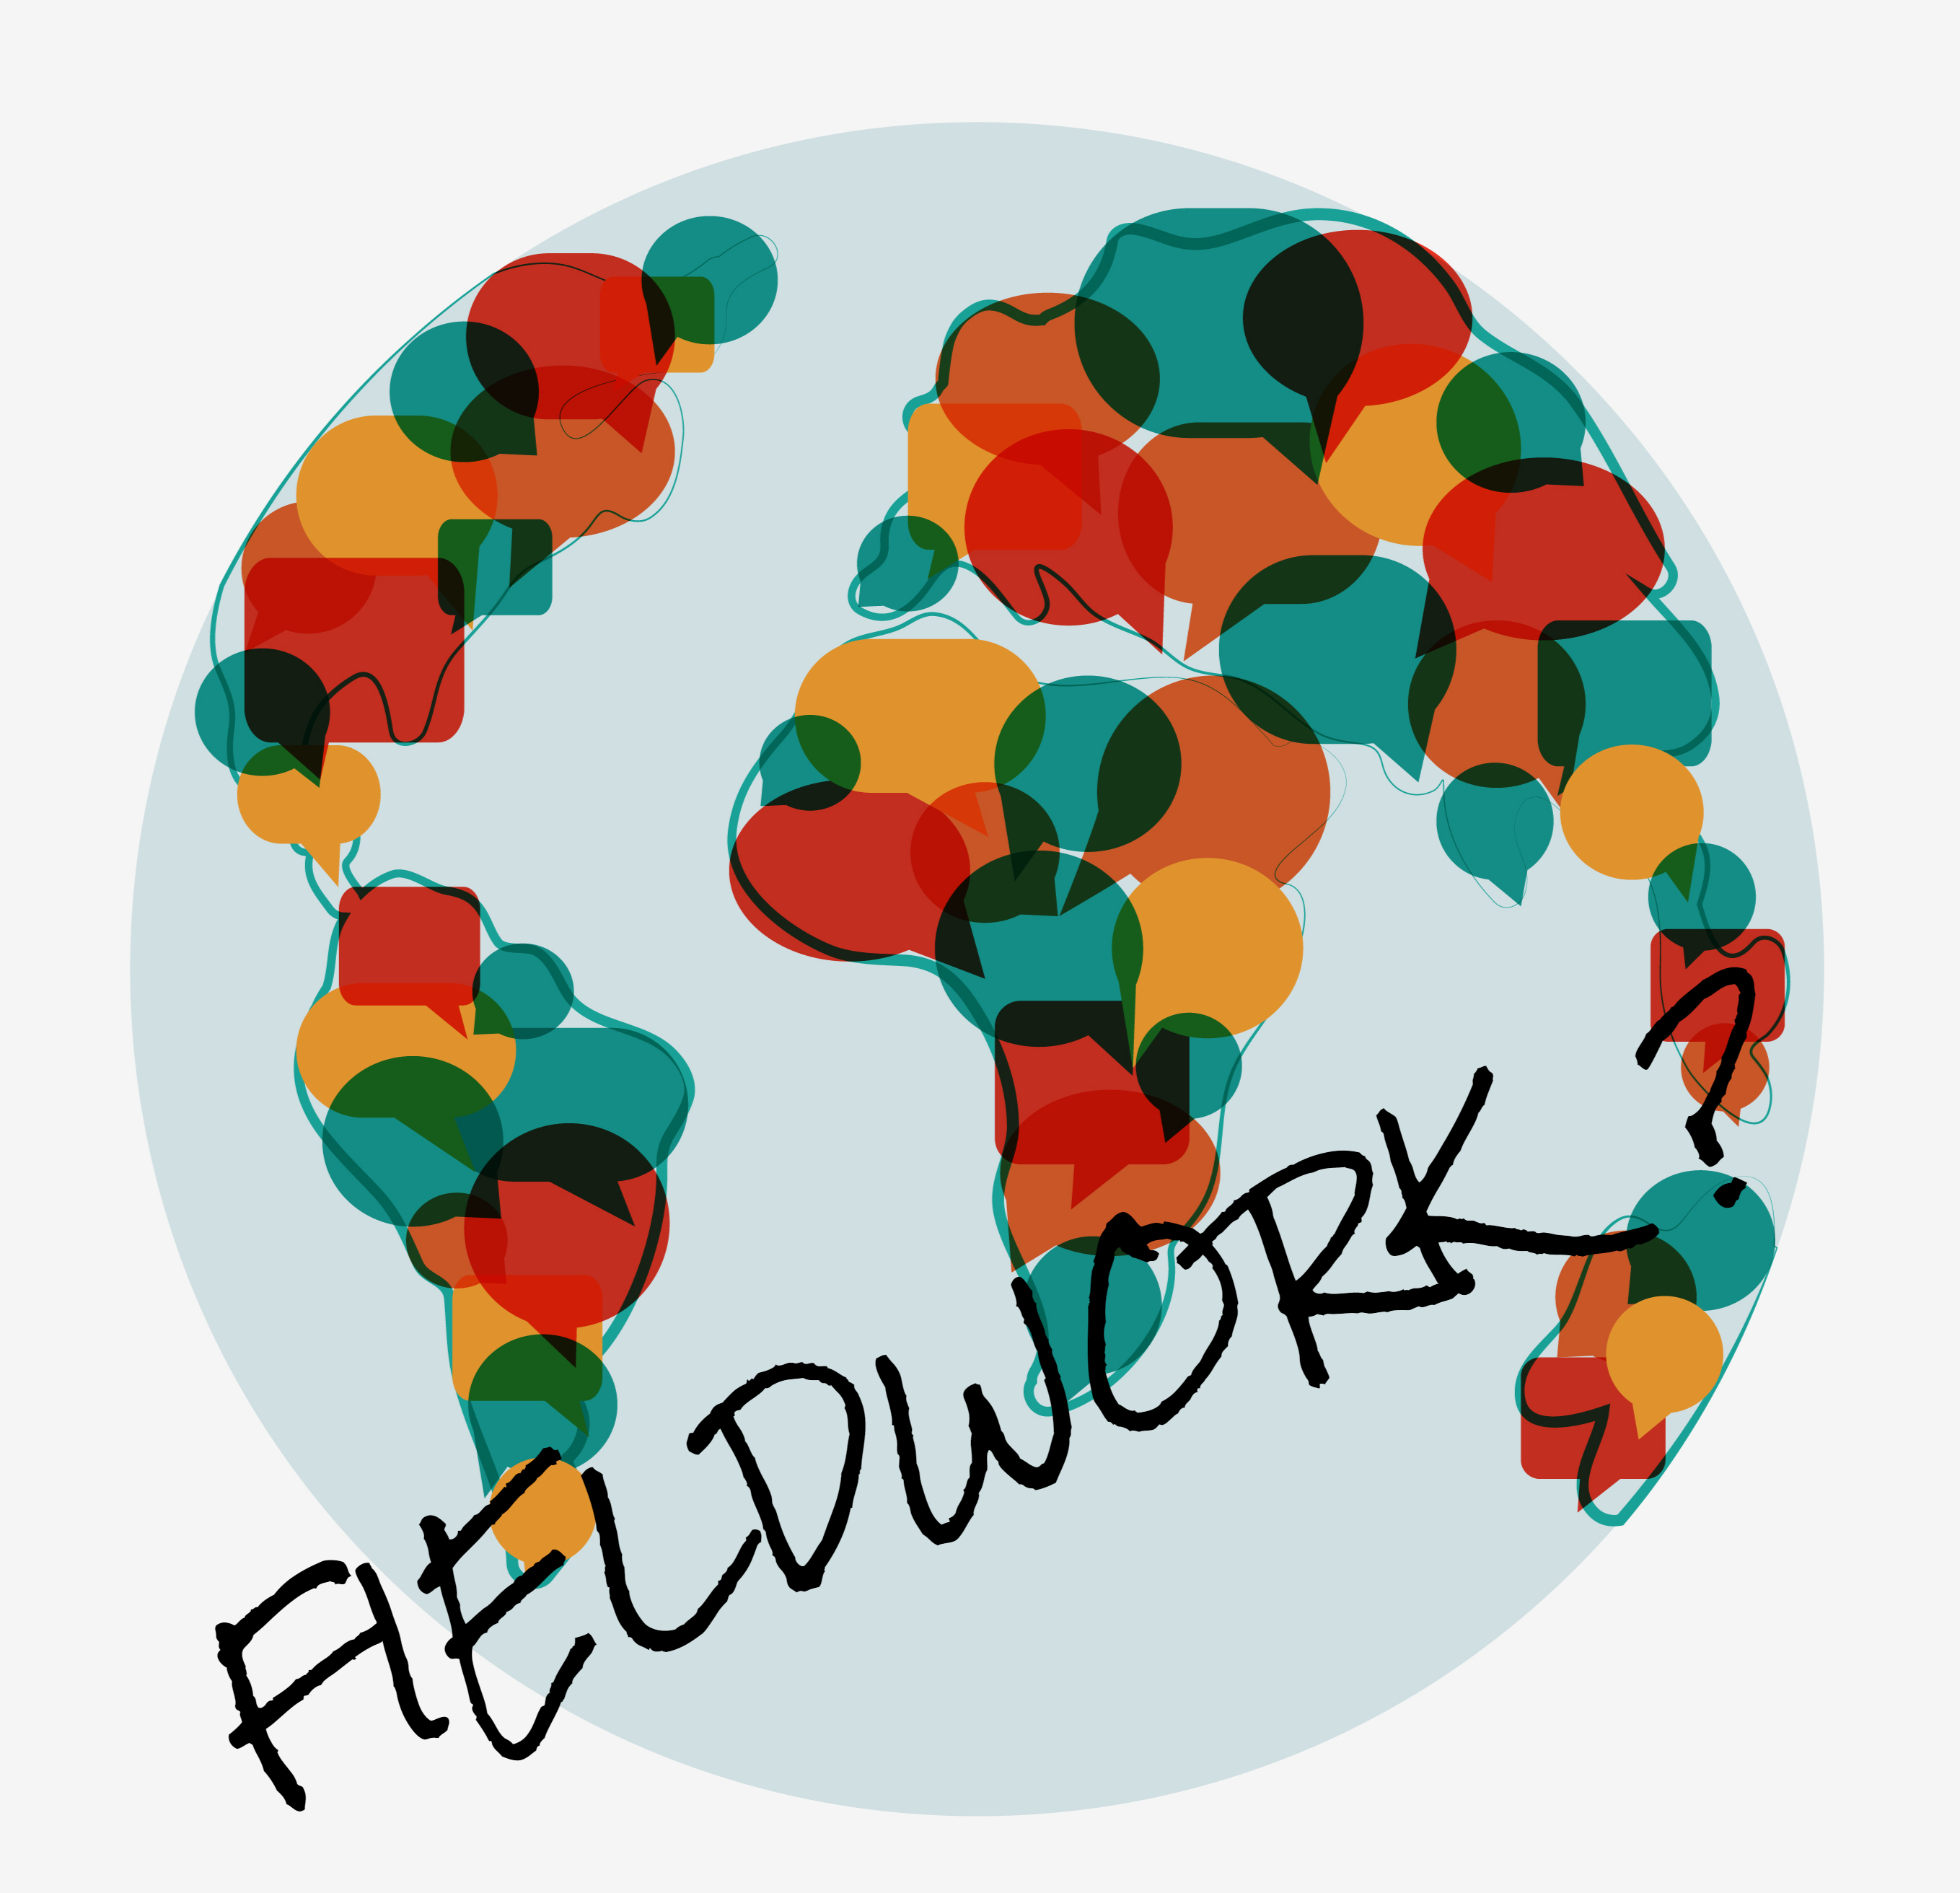 CANCELLED - Fieldwork in developing areas: opportunities and challenges